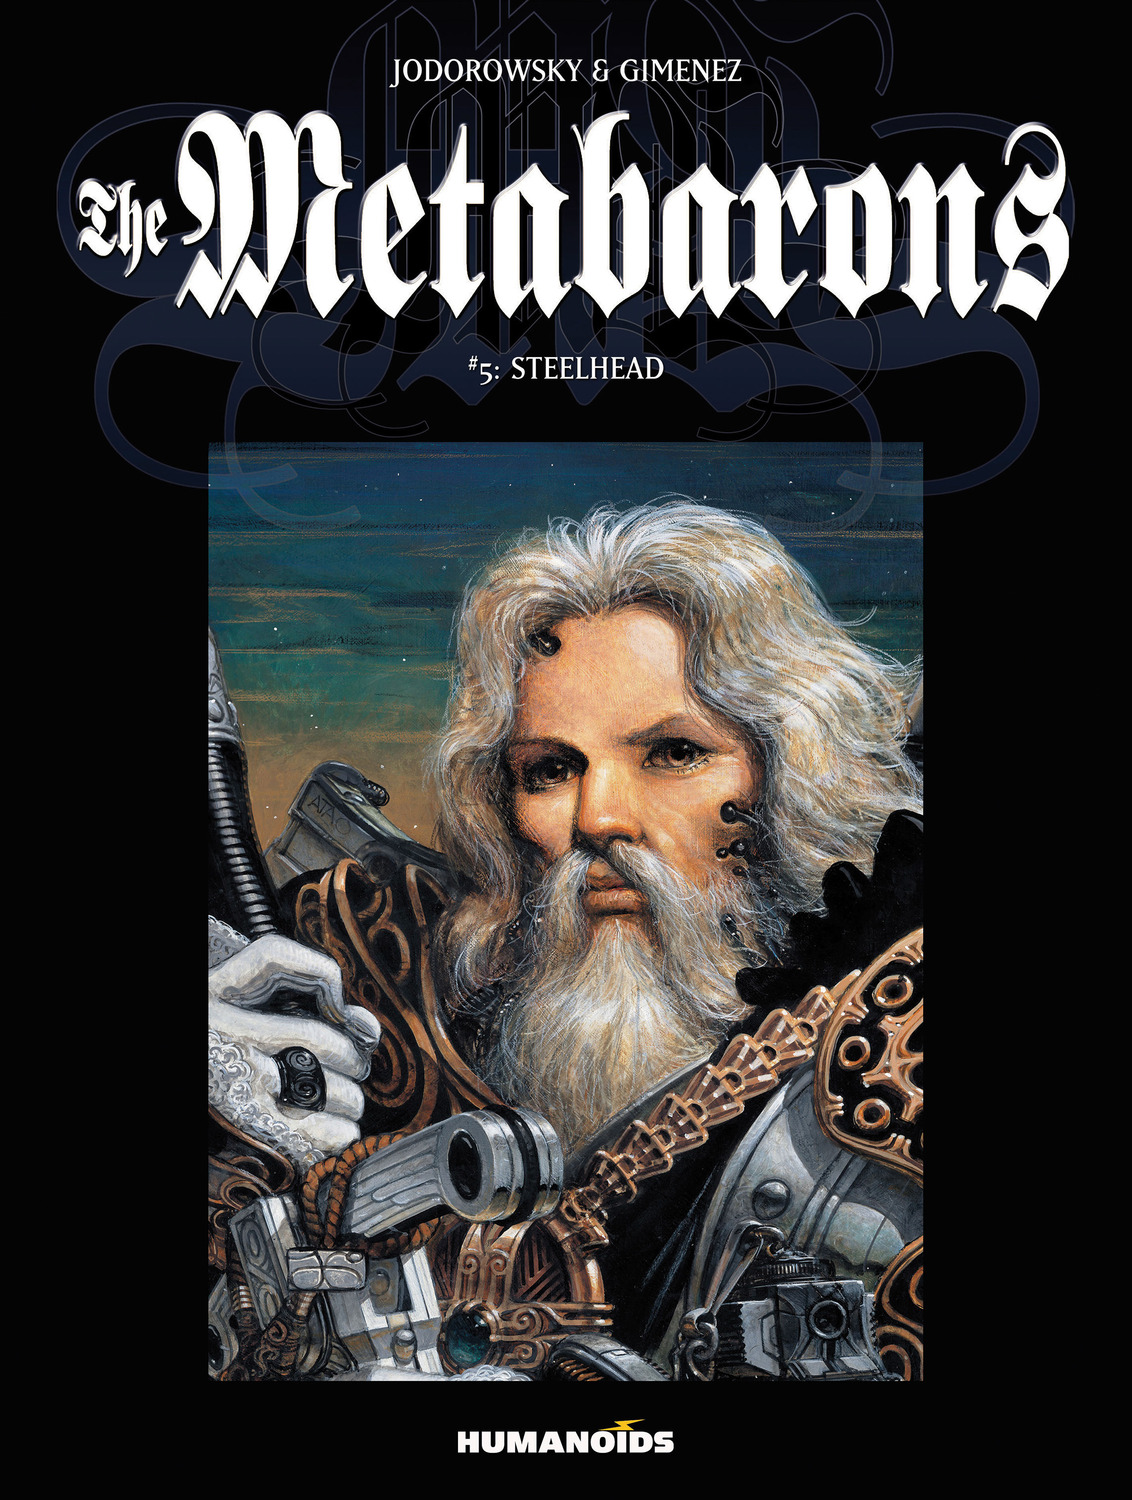 The Metabarons #5 : Steelhead - Digital Comic